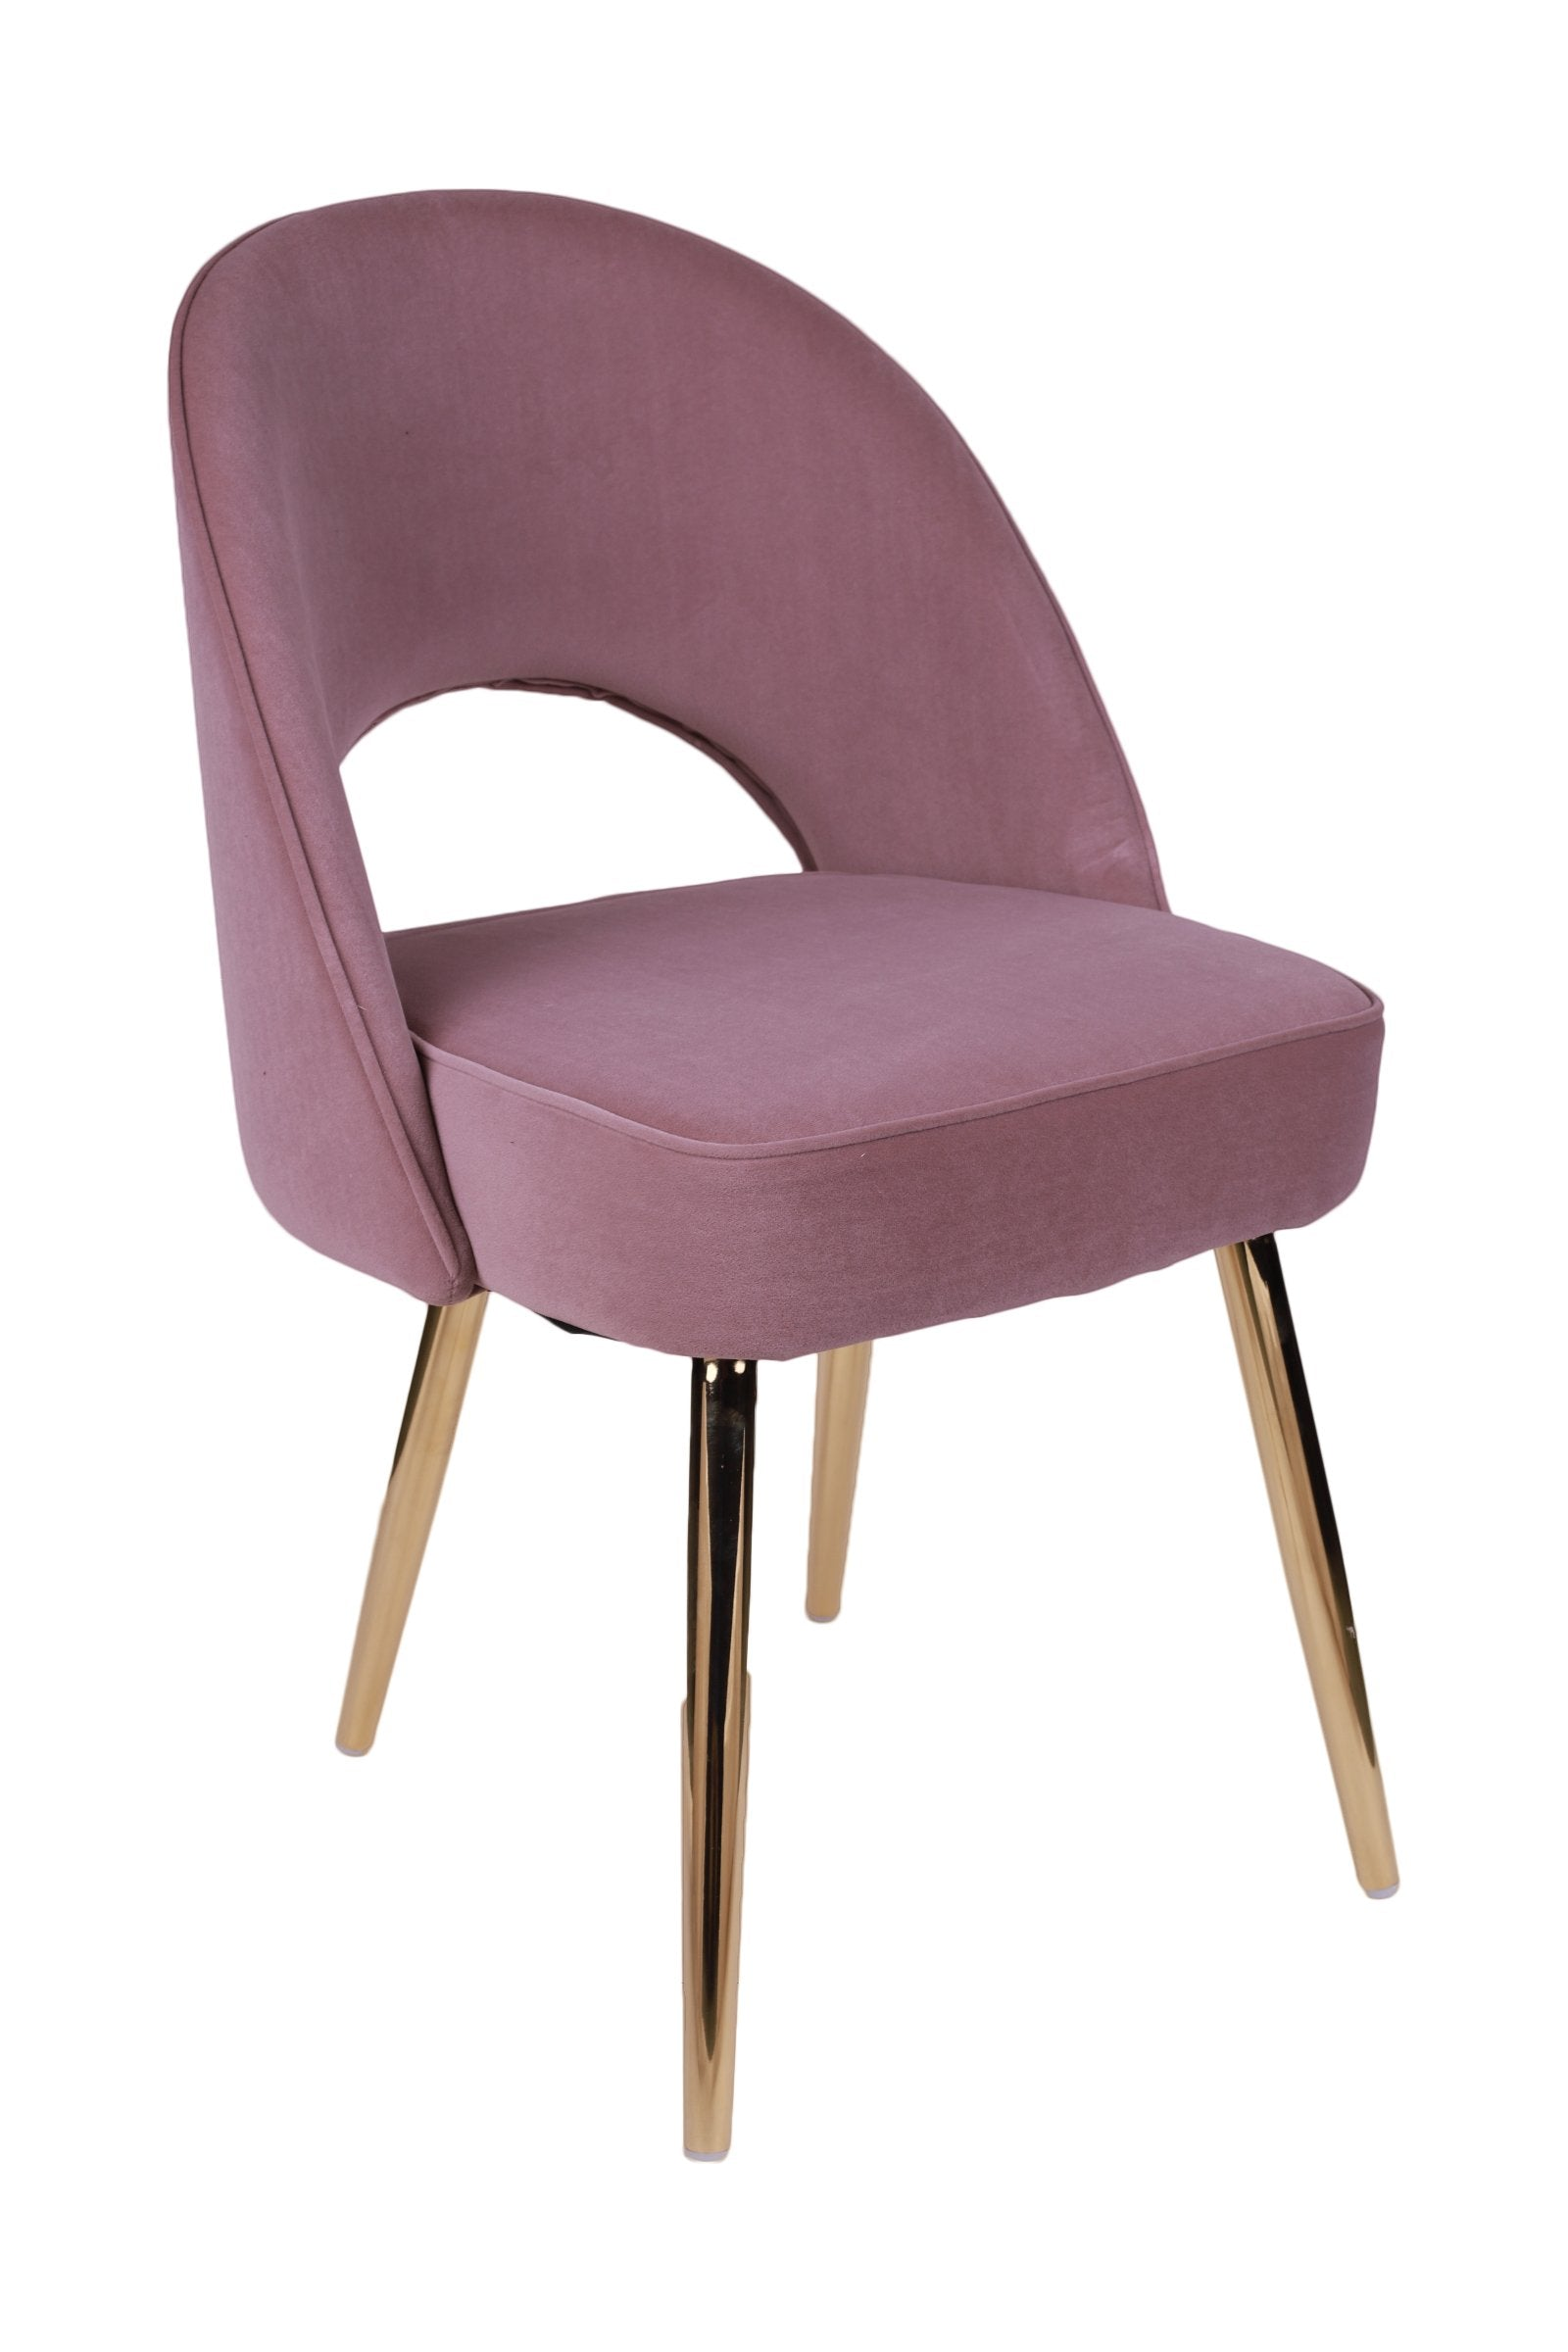 Chromed Gold Chair in Light Purple Color